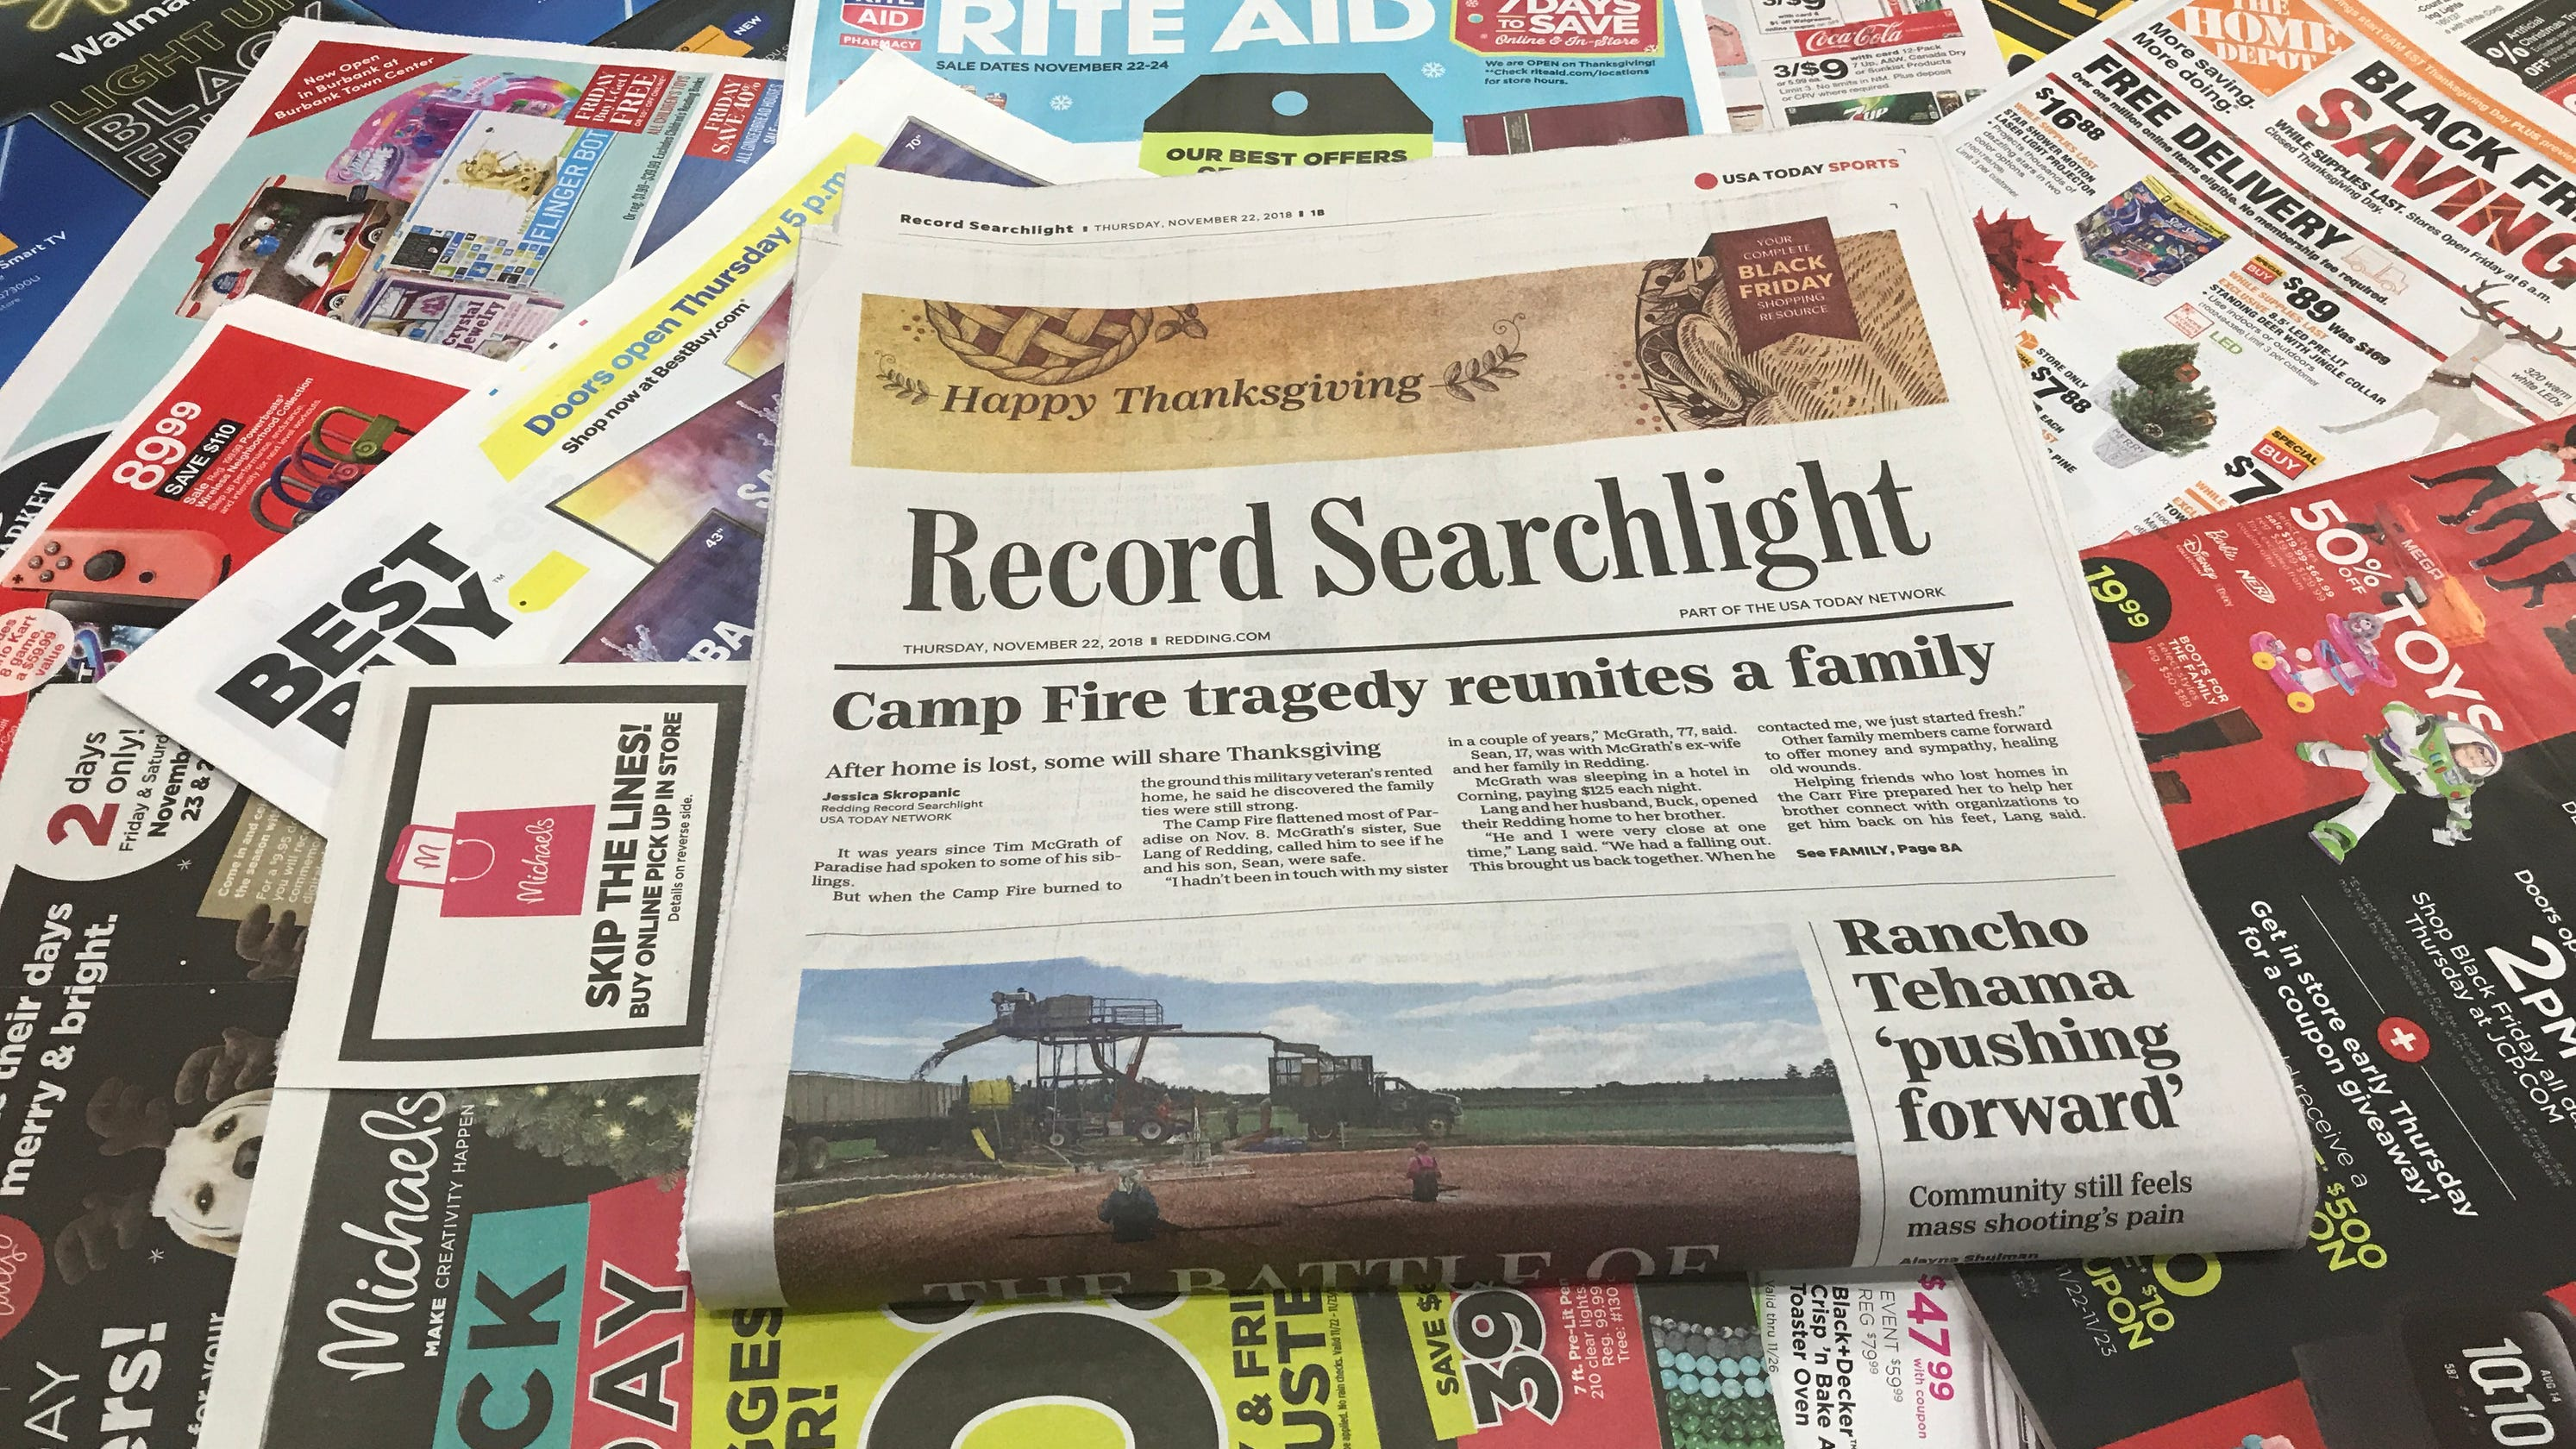 9204821eba7 Black Friday ads: Get the Record Searchlight Thanksgiving issue today